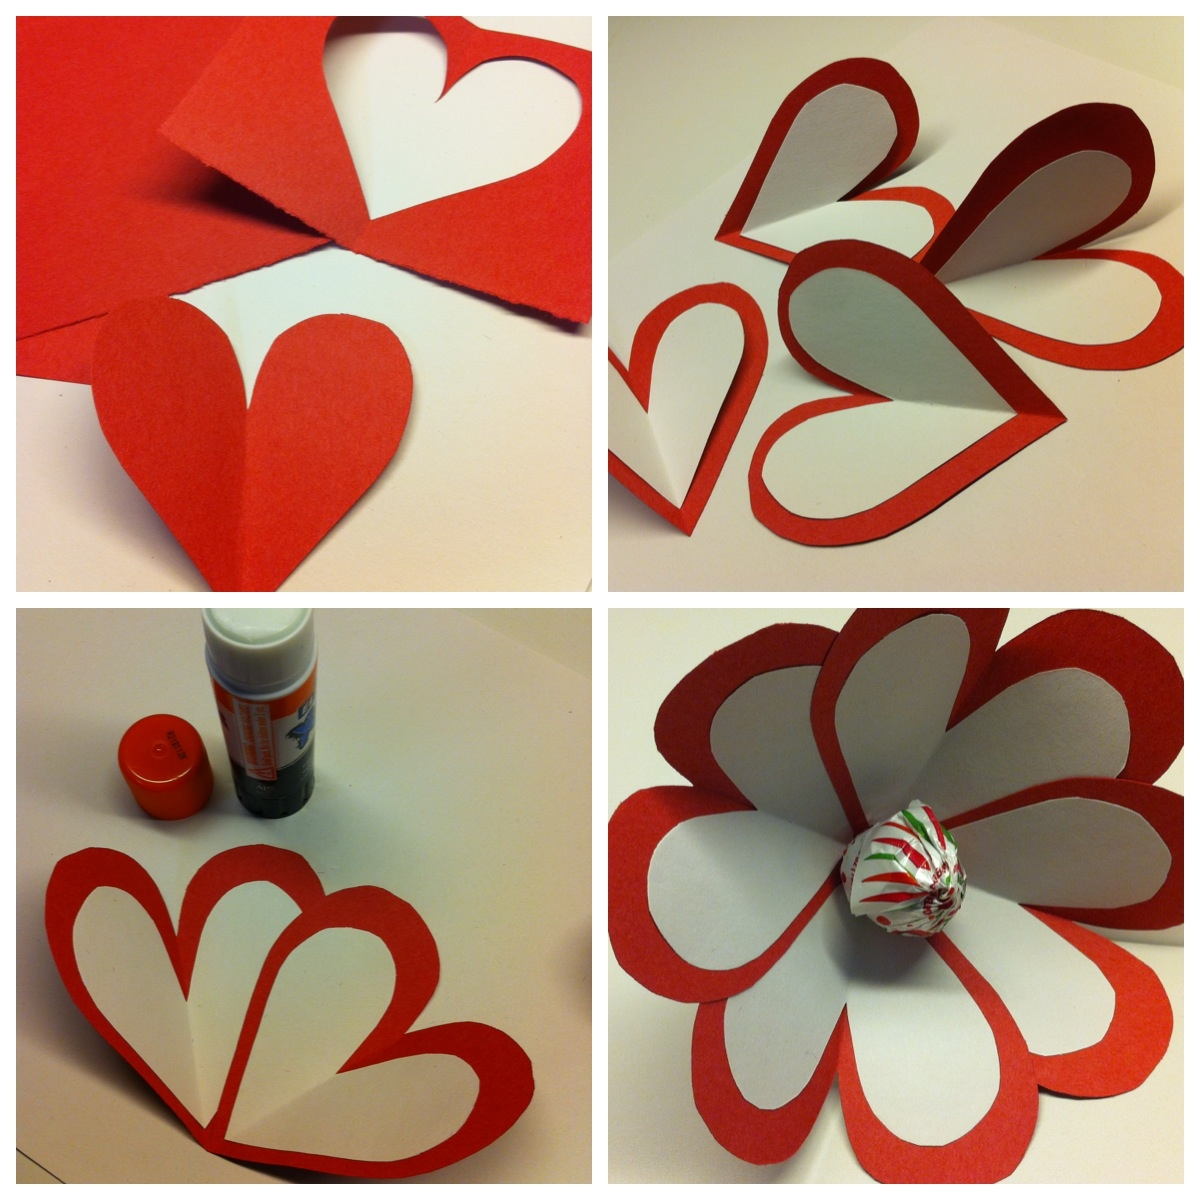 Valentine Day Craft Ideas For Kids Part - 30: The JumpStart Blog - WordPress.com